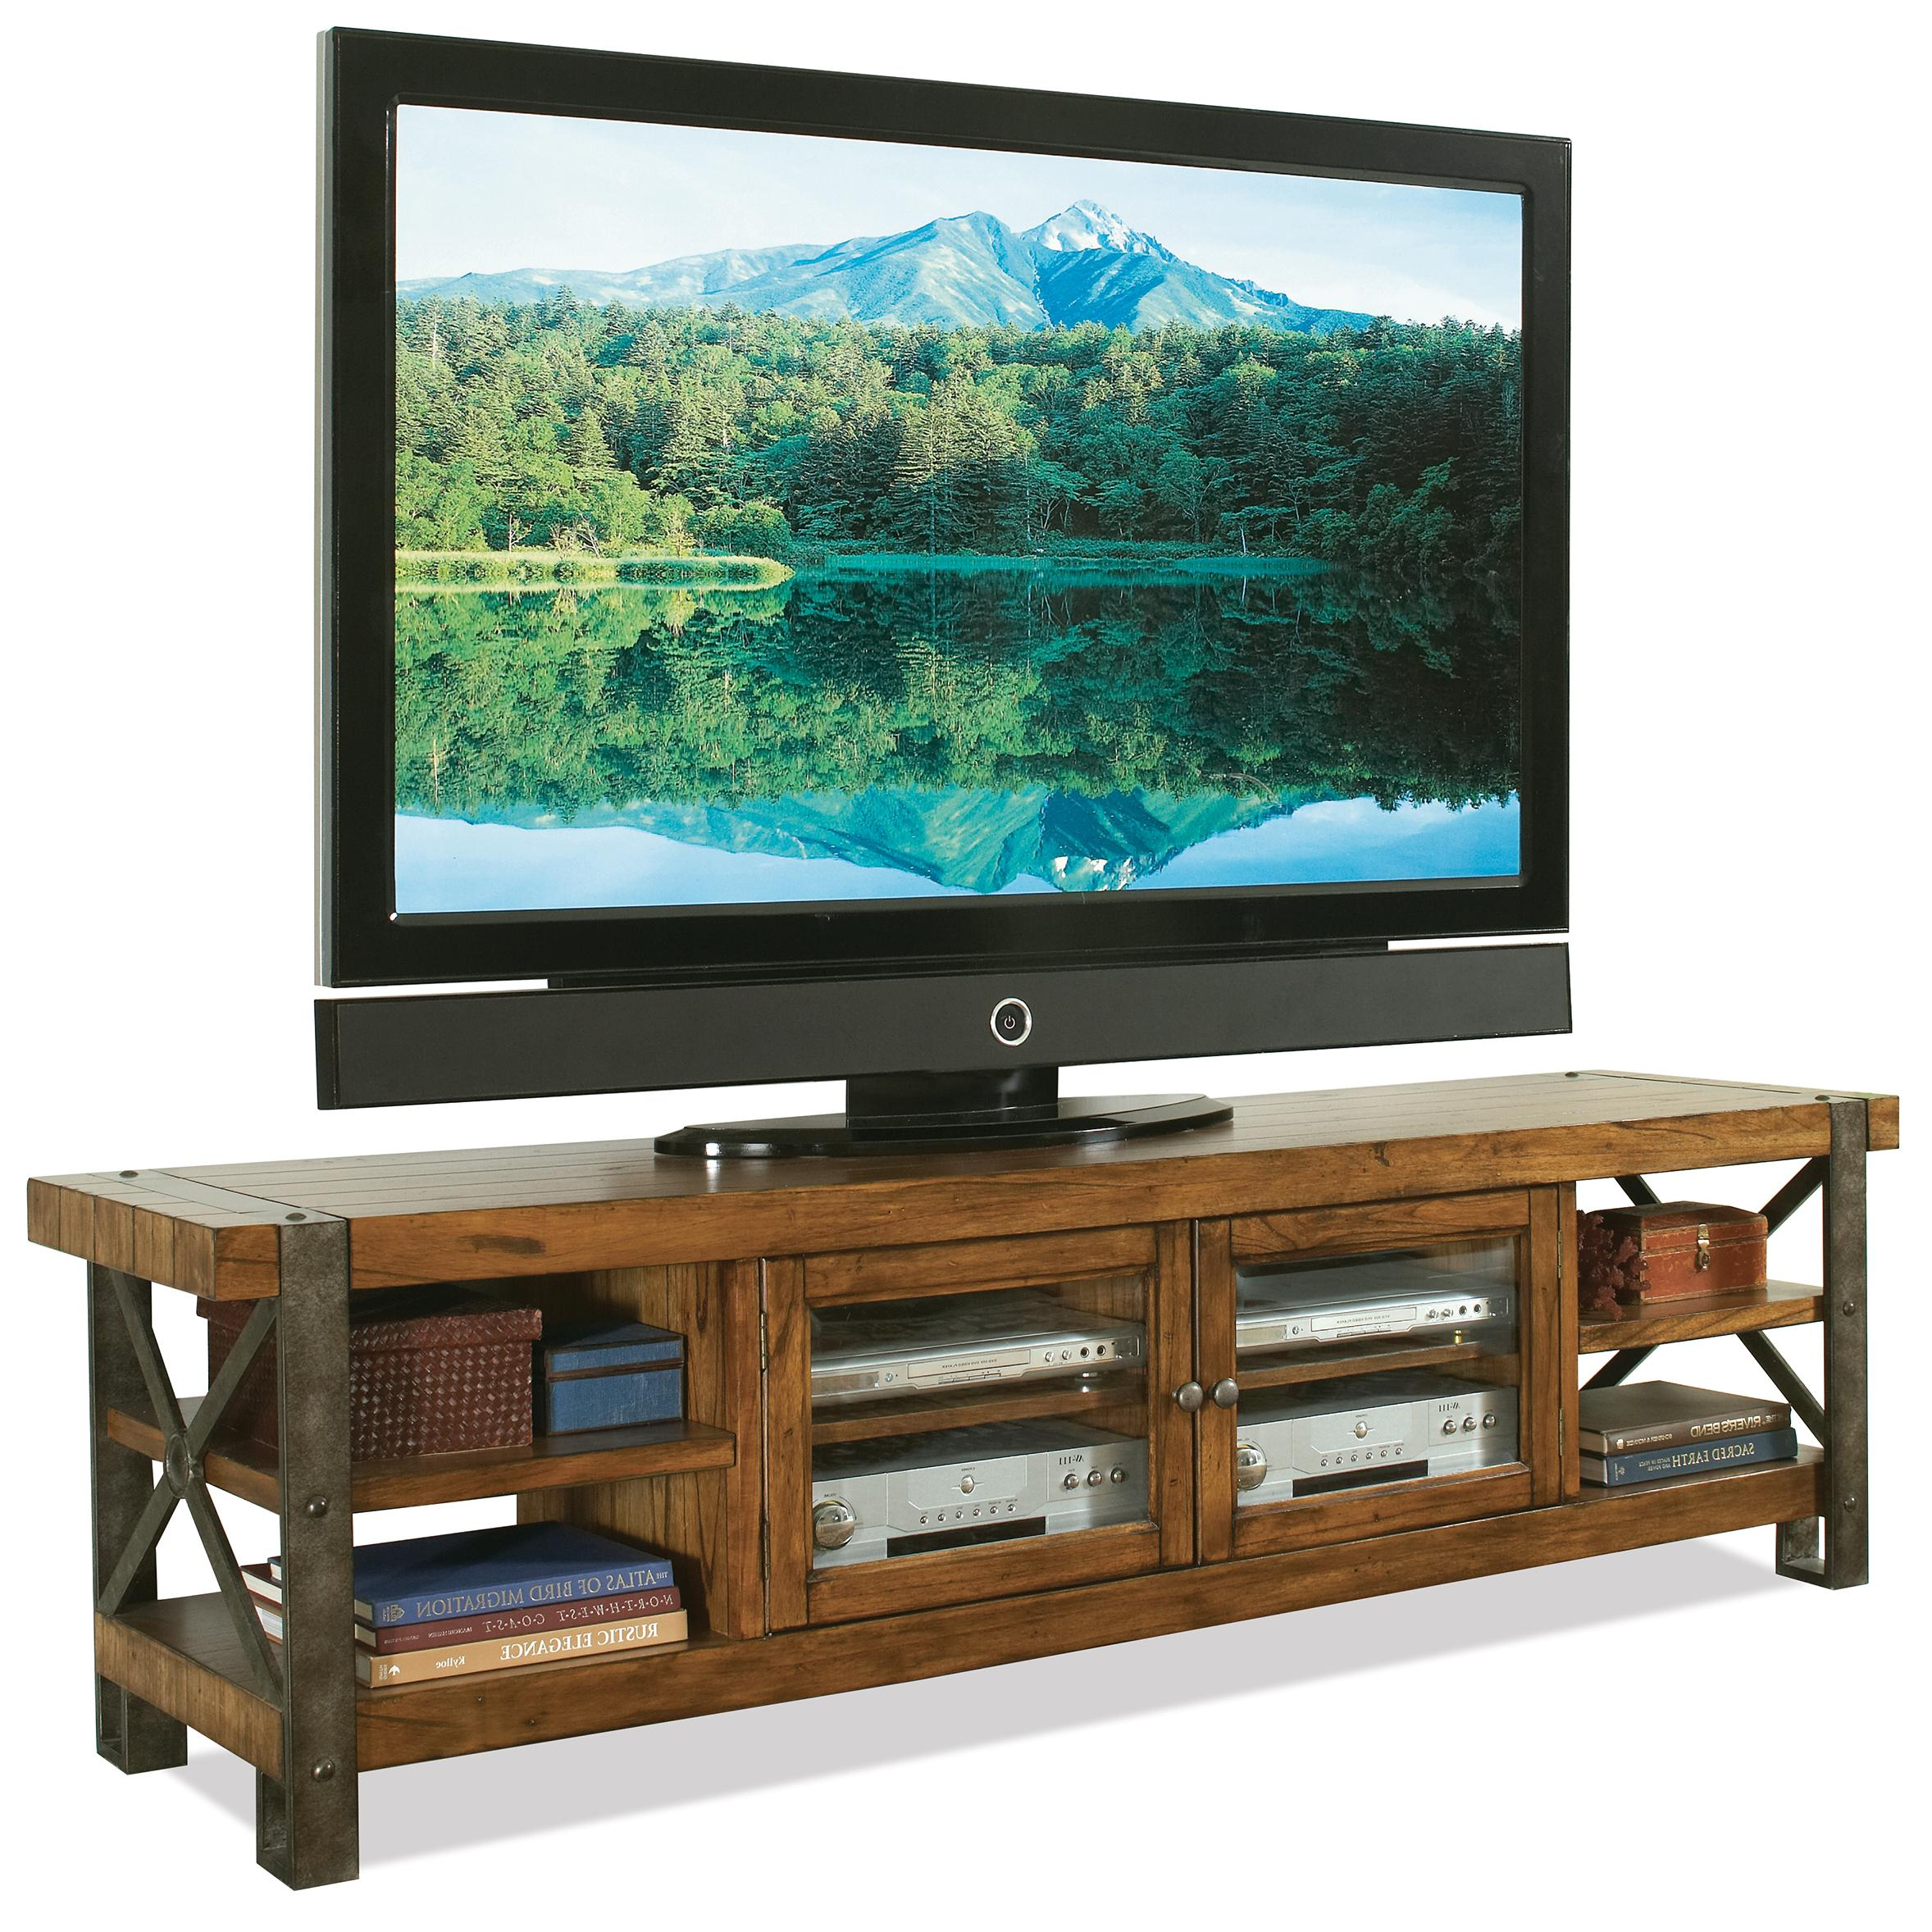 Recommended Sprintz Furniture For Best Furniture Ideas: Wooden Dresser For  Tv By Sprintz Furniture Ideas